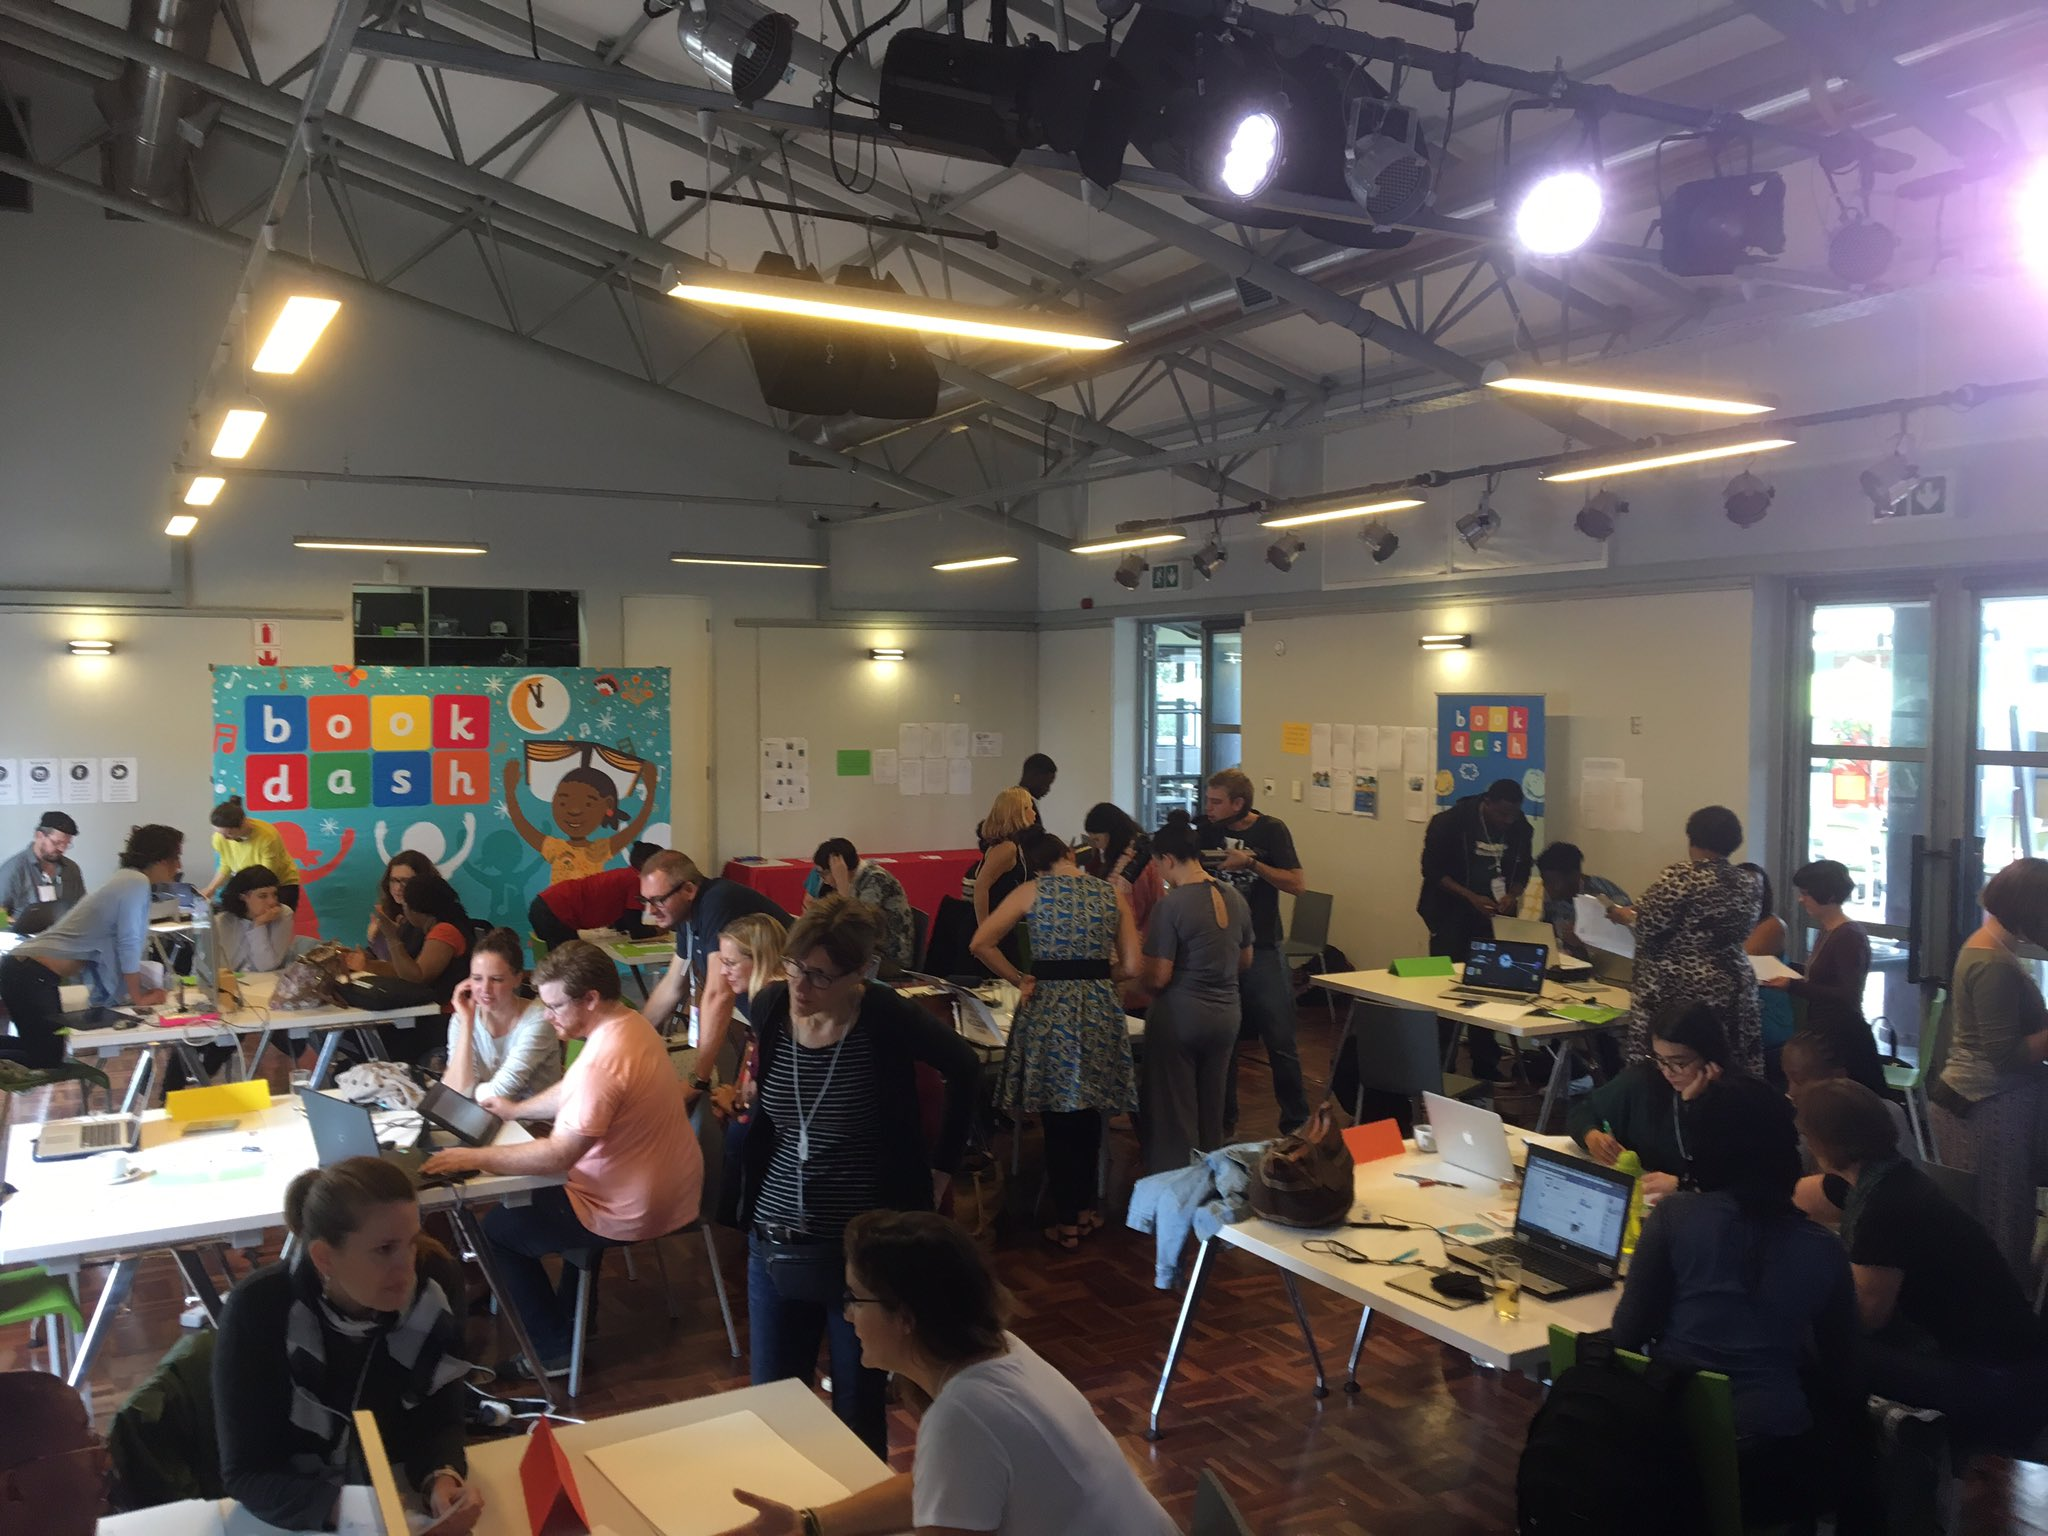 We're so proud to sponsor the 1st pan-African #BookDash with authors and illustrators from 9 different countries! @bookdash @goethejoburg https://t.co/ZyqK4DRJKs